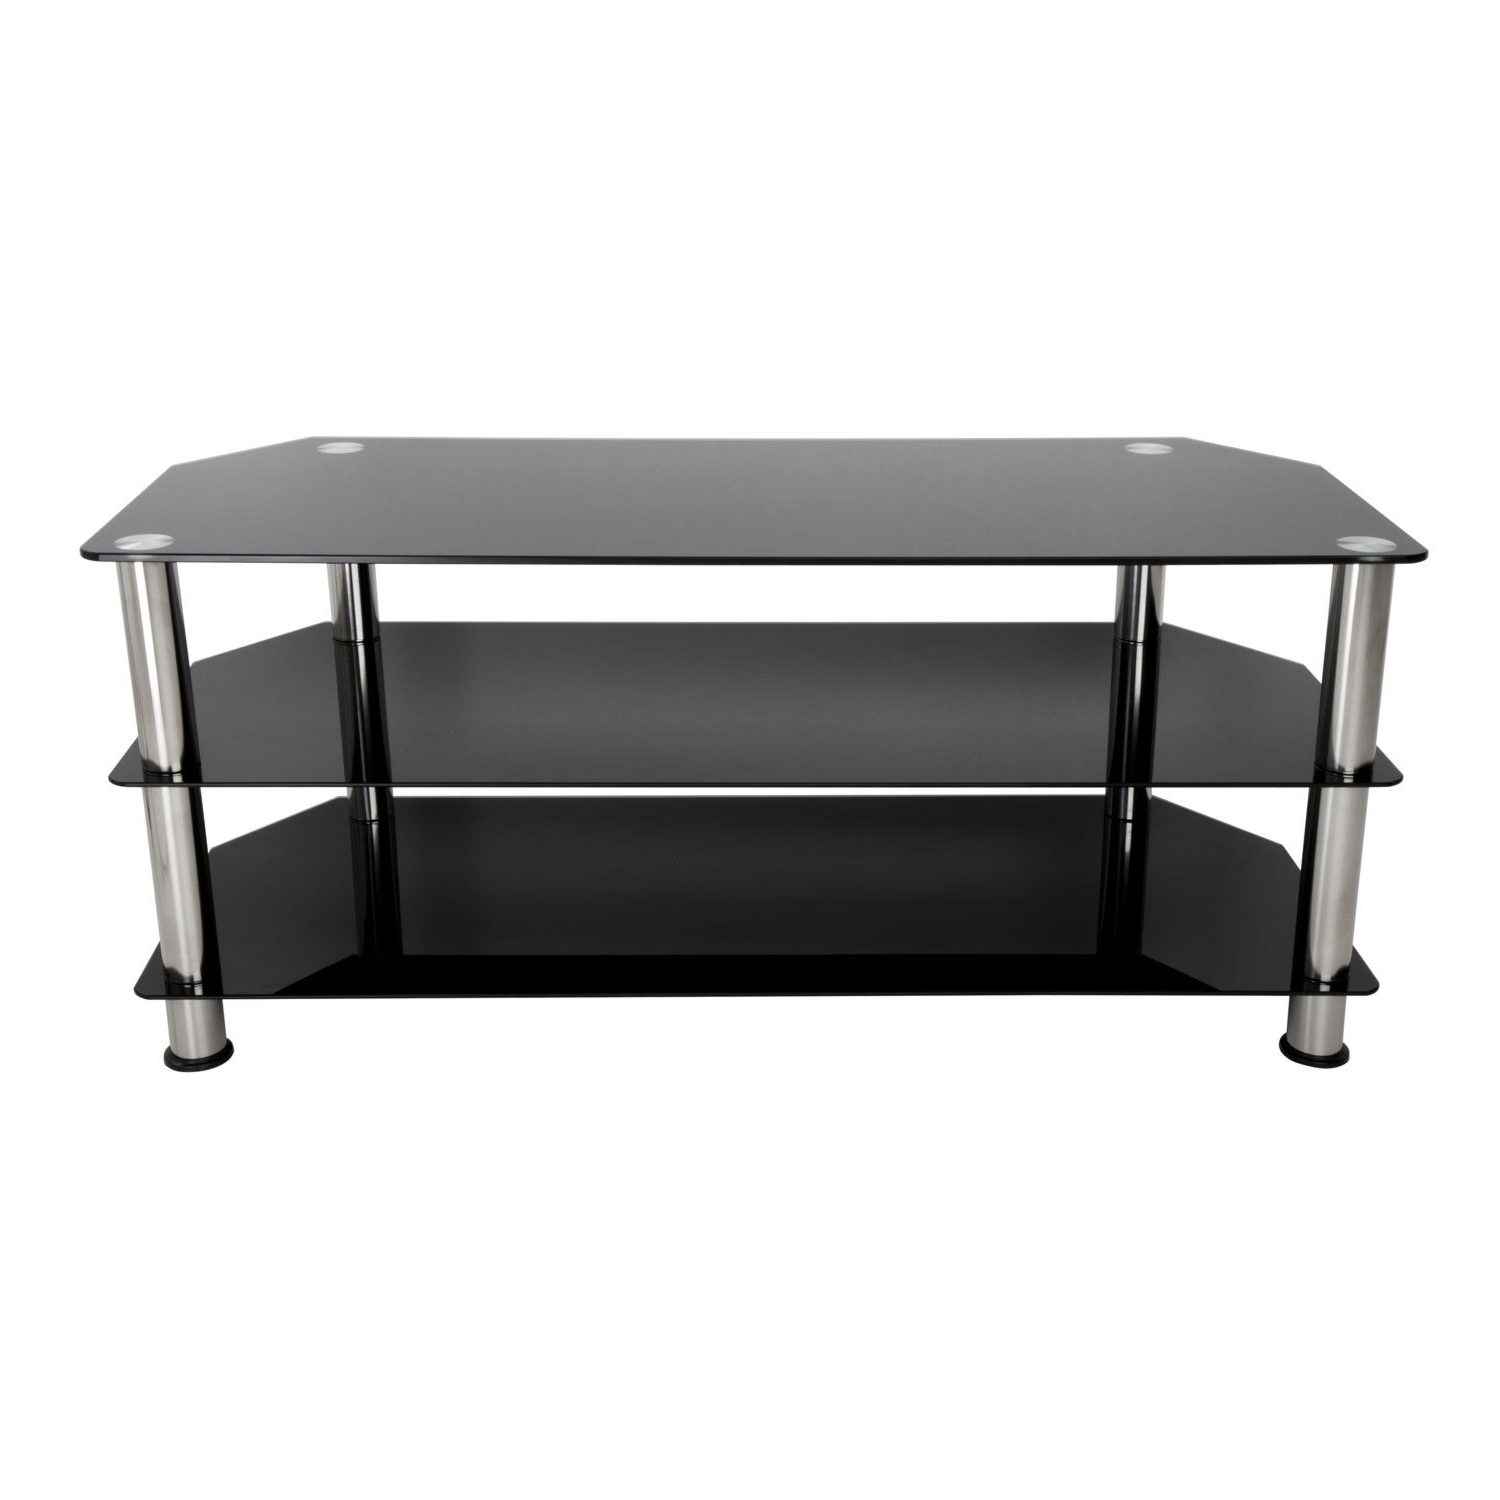 2017 Crown Tv Stand Pertaining To Black Glass Tv Stands (View 1 of 20)